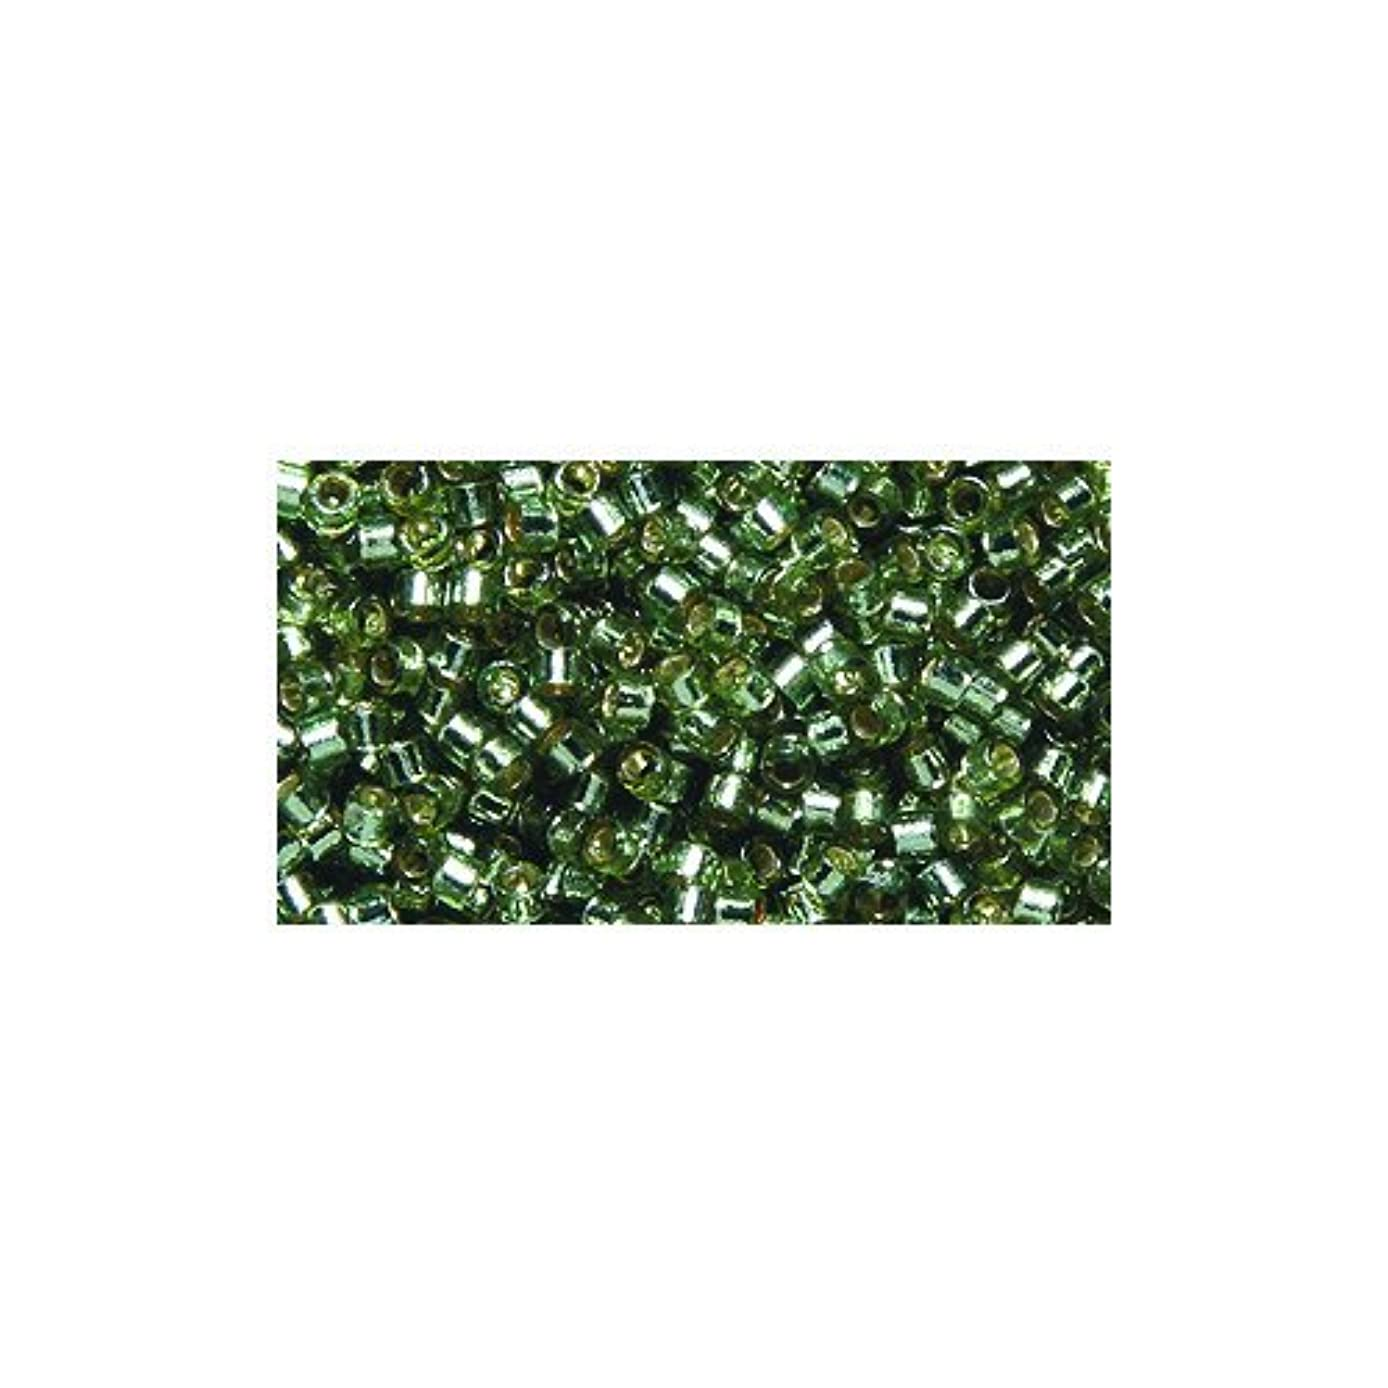 Miyuki Delica Seed Bead 11/0 DB2163, Duracoat Silver Lined Willow, 9-Gram/Pack